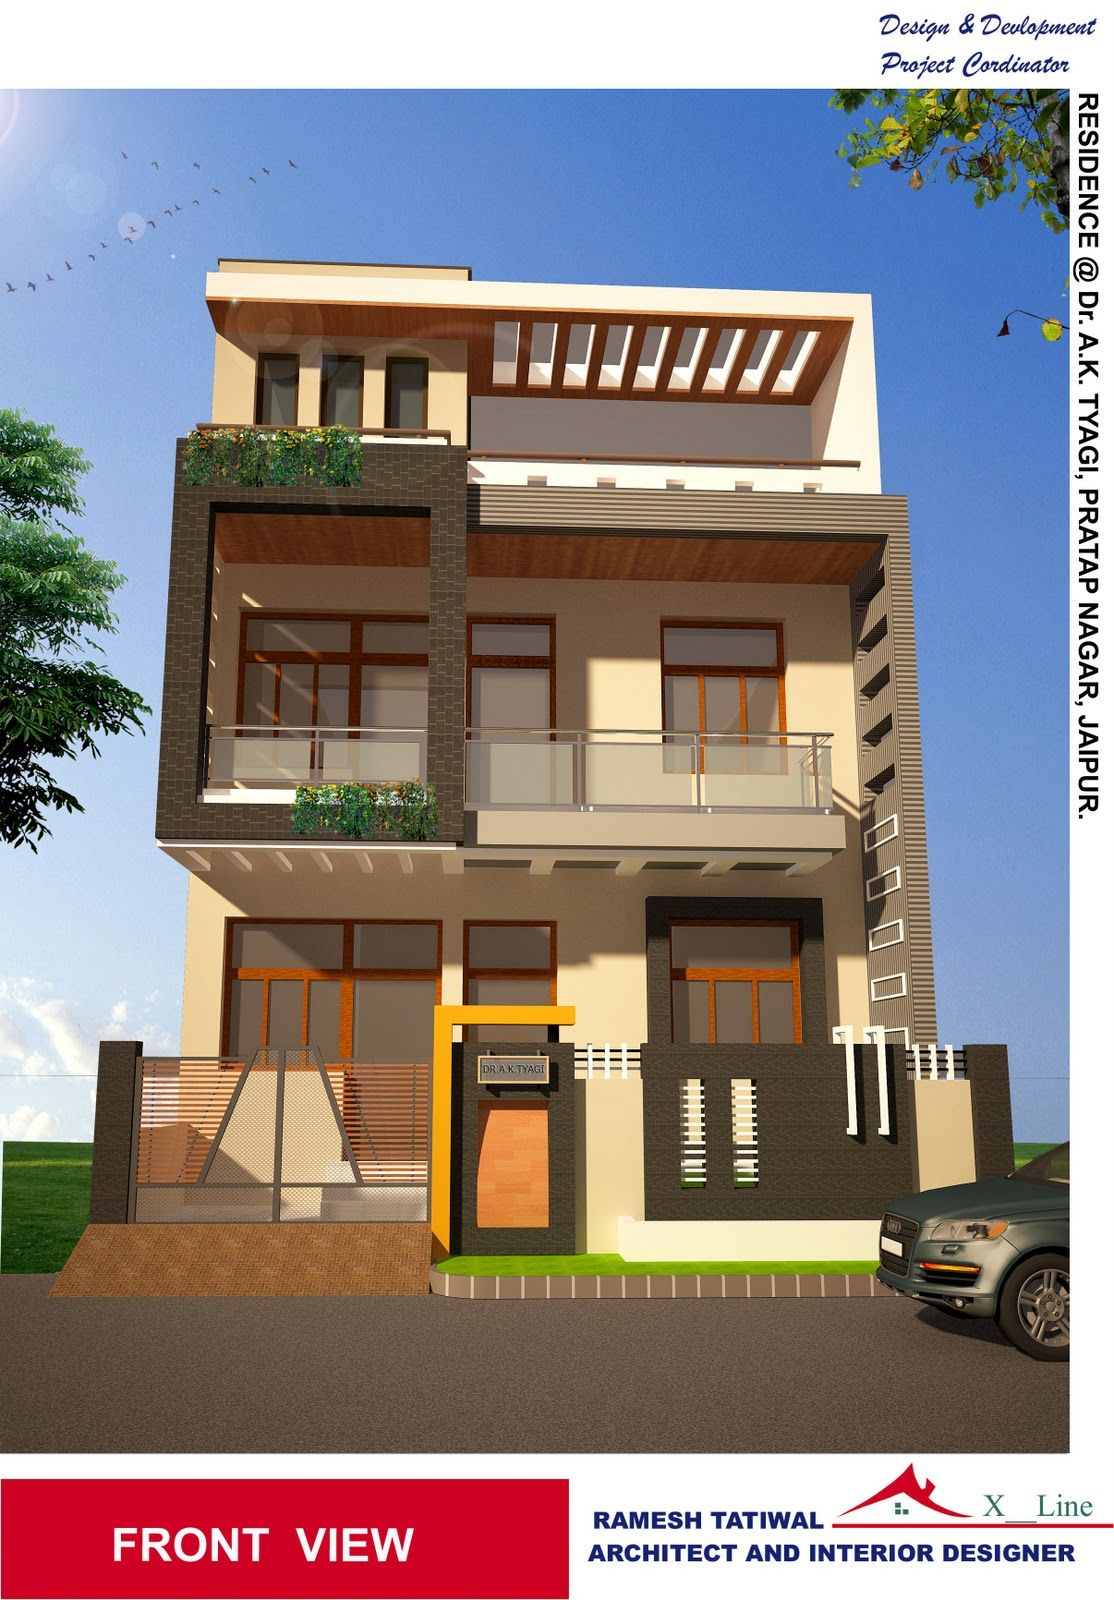 Housedesigns modern indian home architecture design from New home designs in india